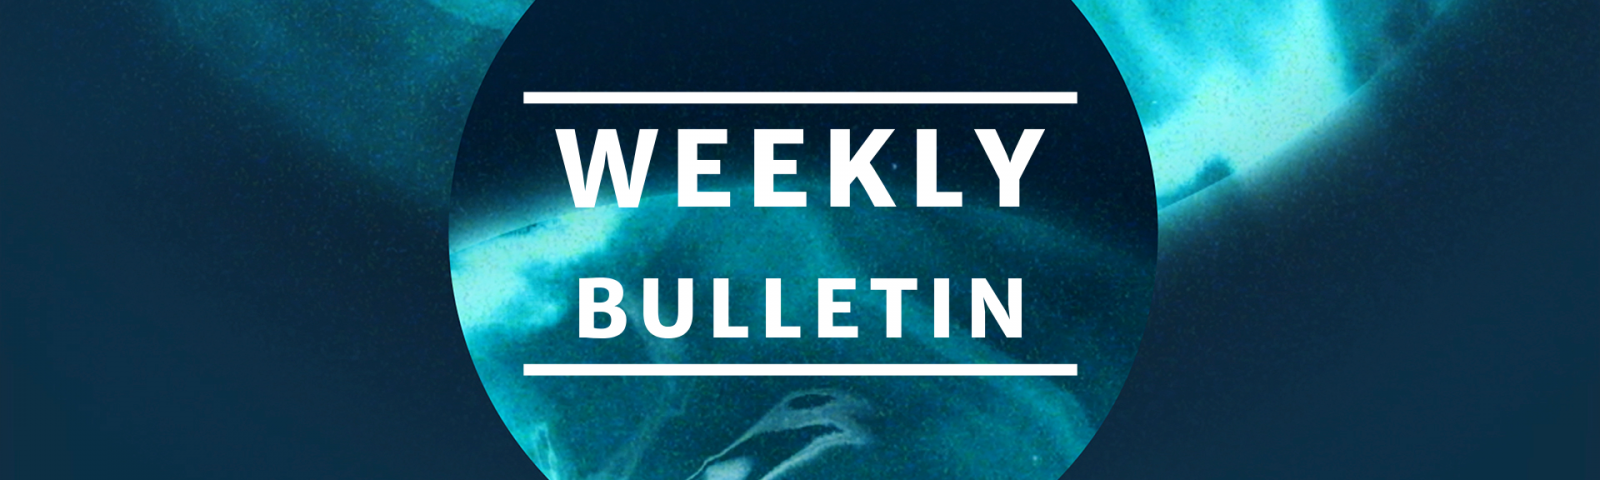 Weekly Bulletin Cropped